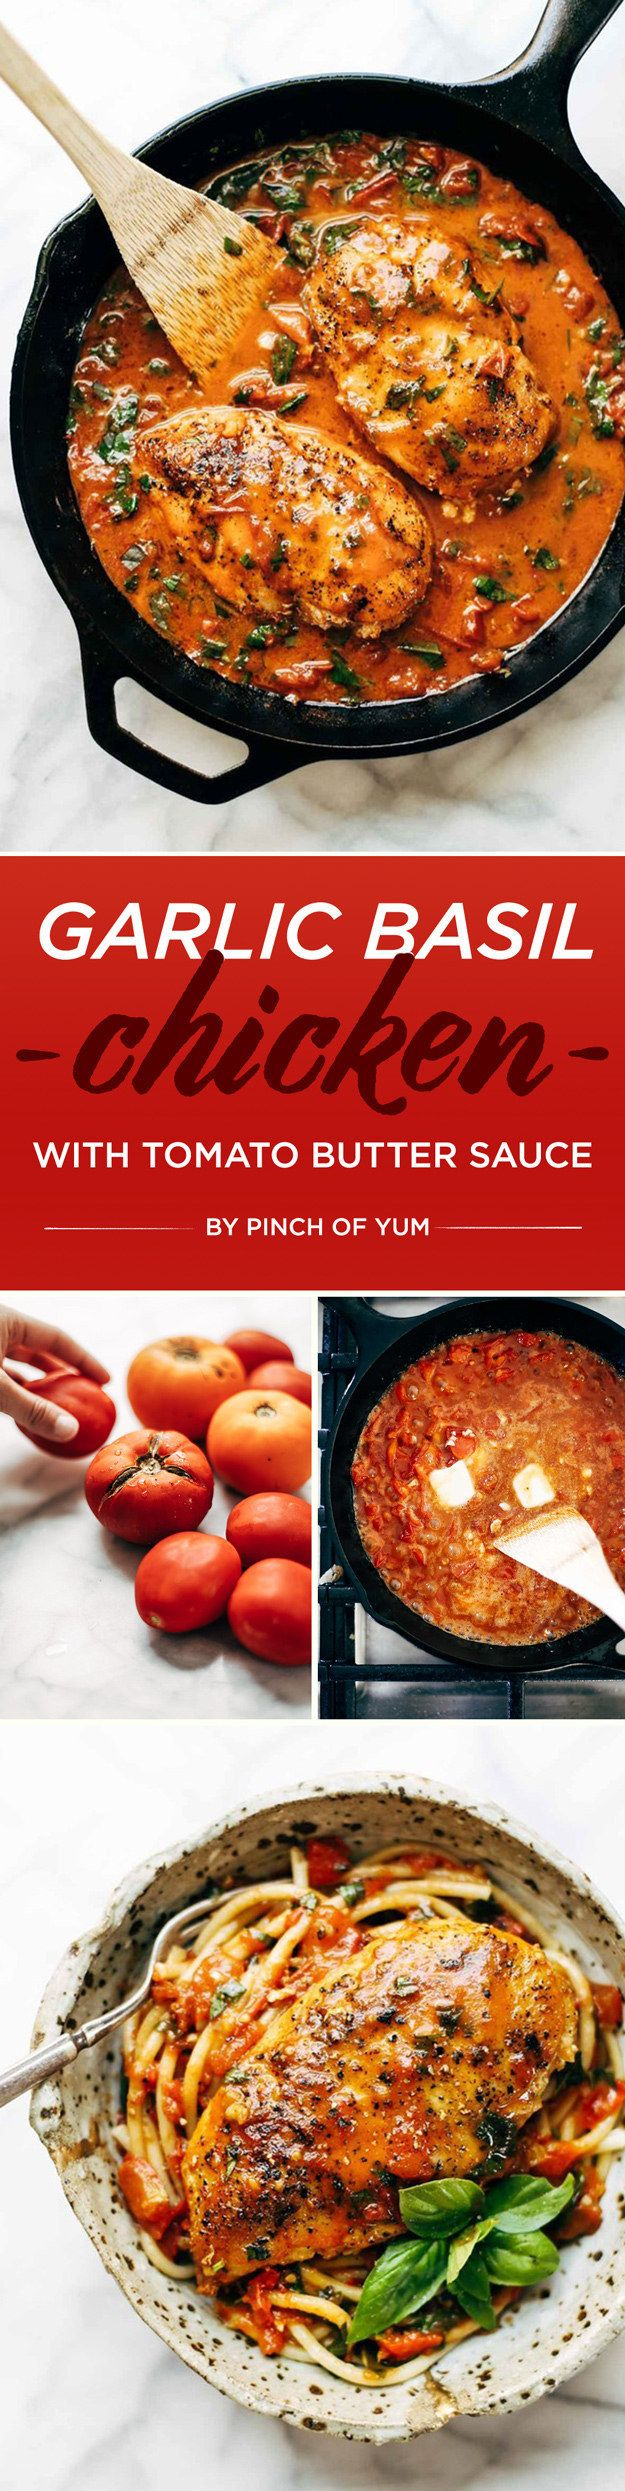 Garlic Basil Chicken with Tomato Butter Sauce | 7 Dinners To Make This Week